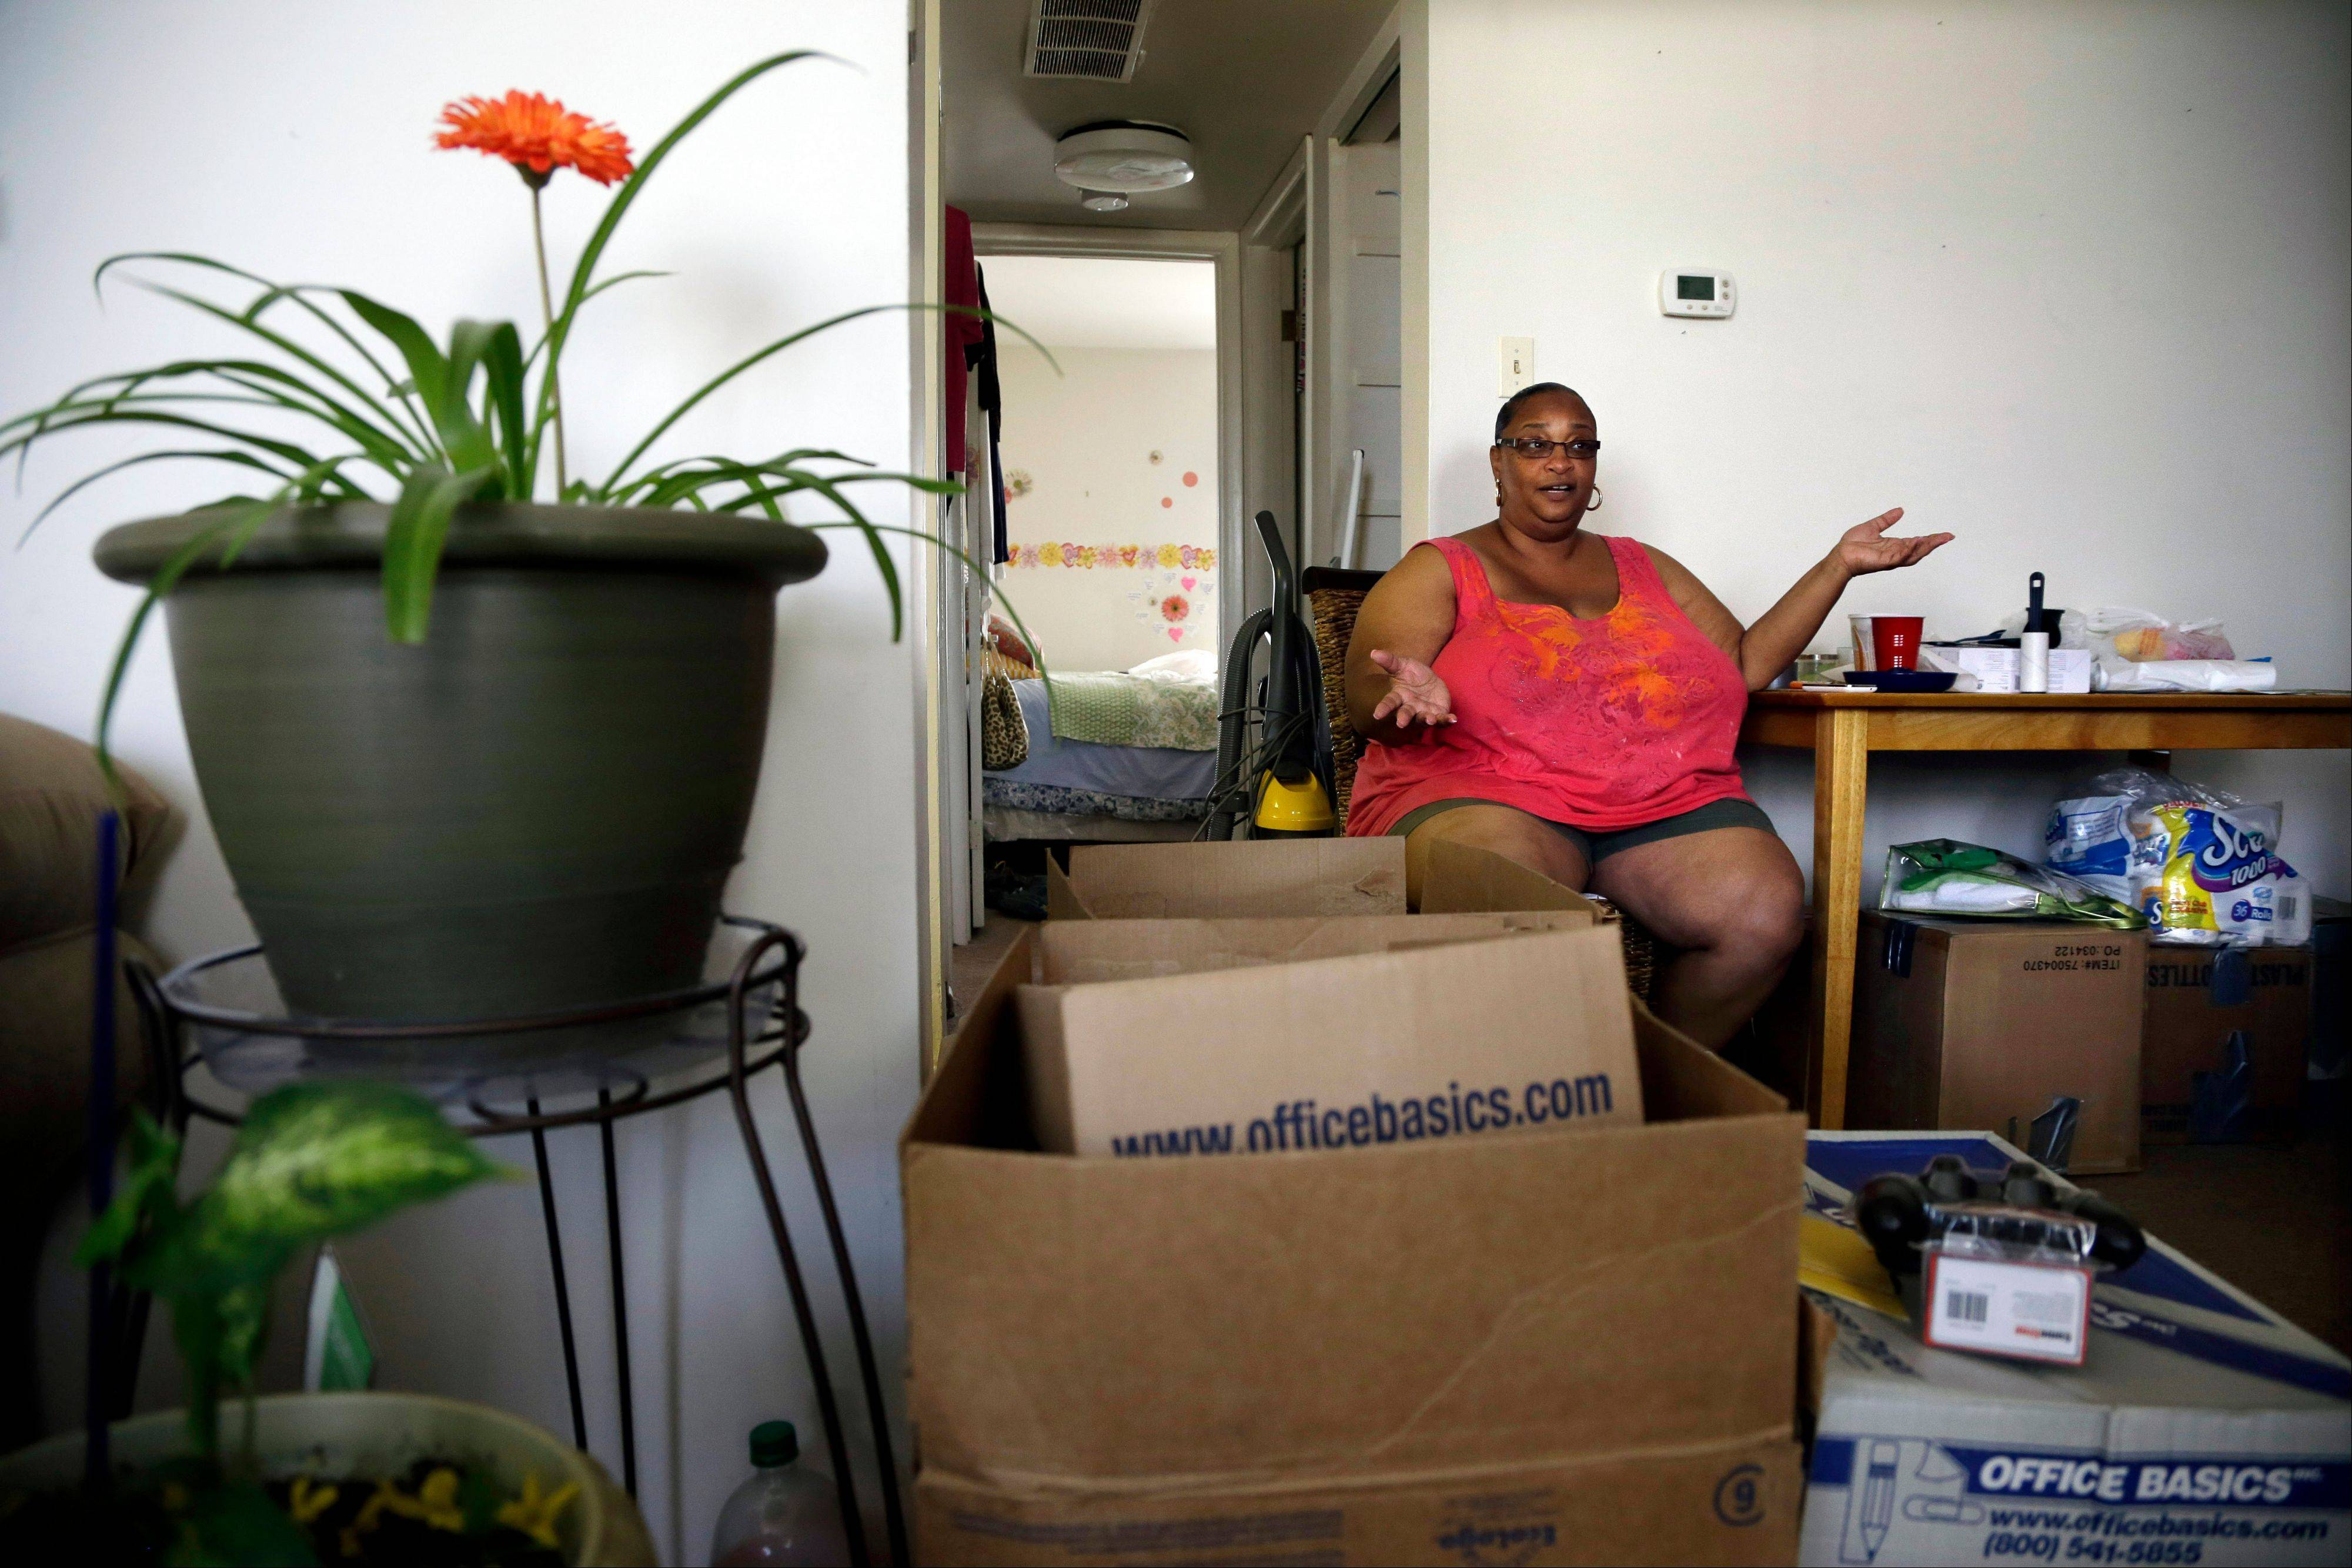 Tanya Coleman is surrounded by moving boxes as she sits in her Vermont Plaza apartment in Atlantic City, N.J.